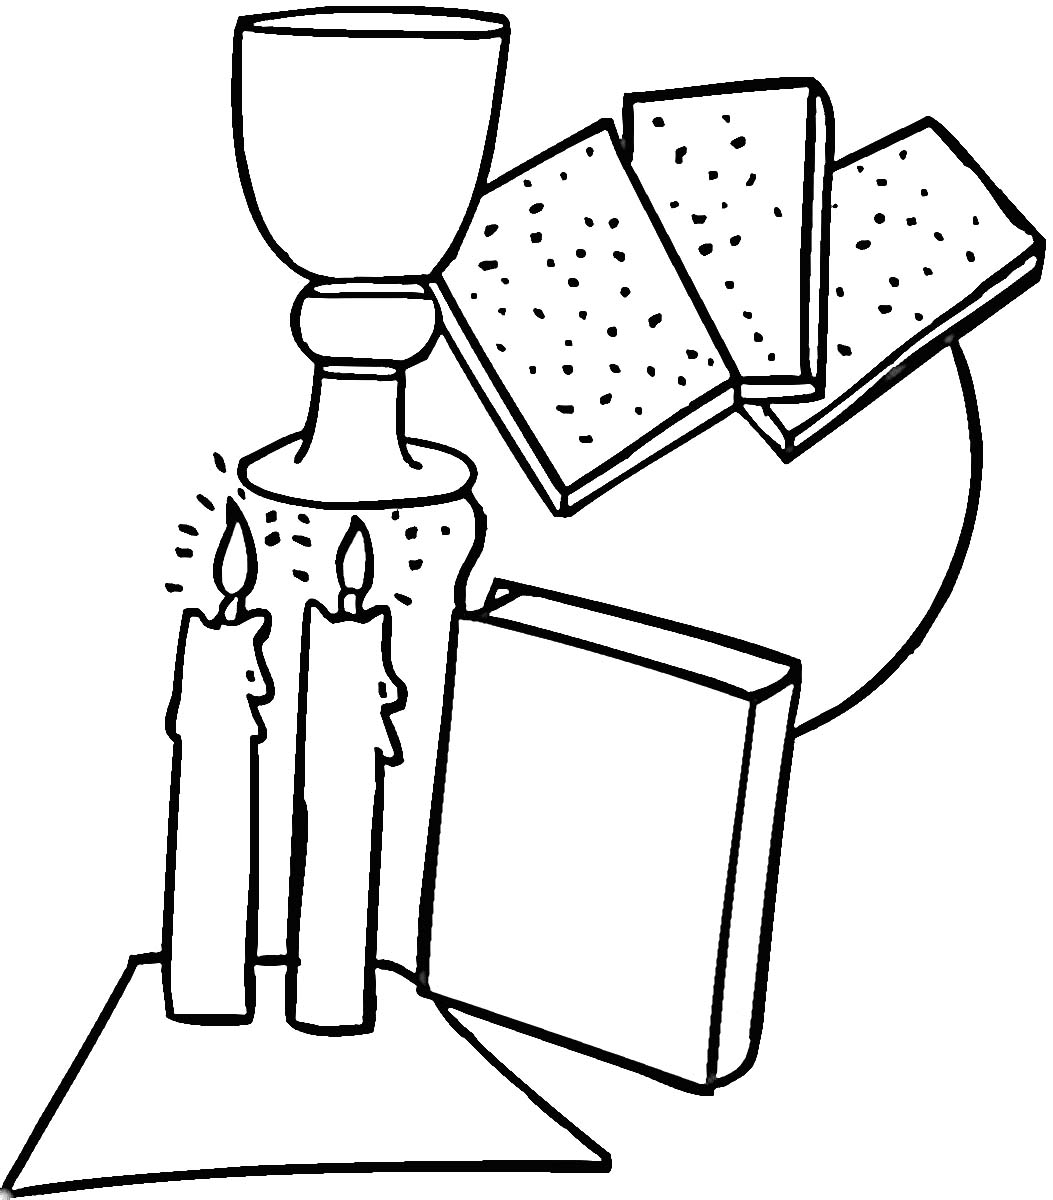 Coloring Pages Religious : Religious coloring pages to print